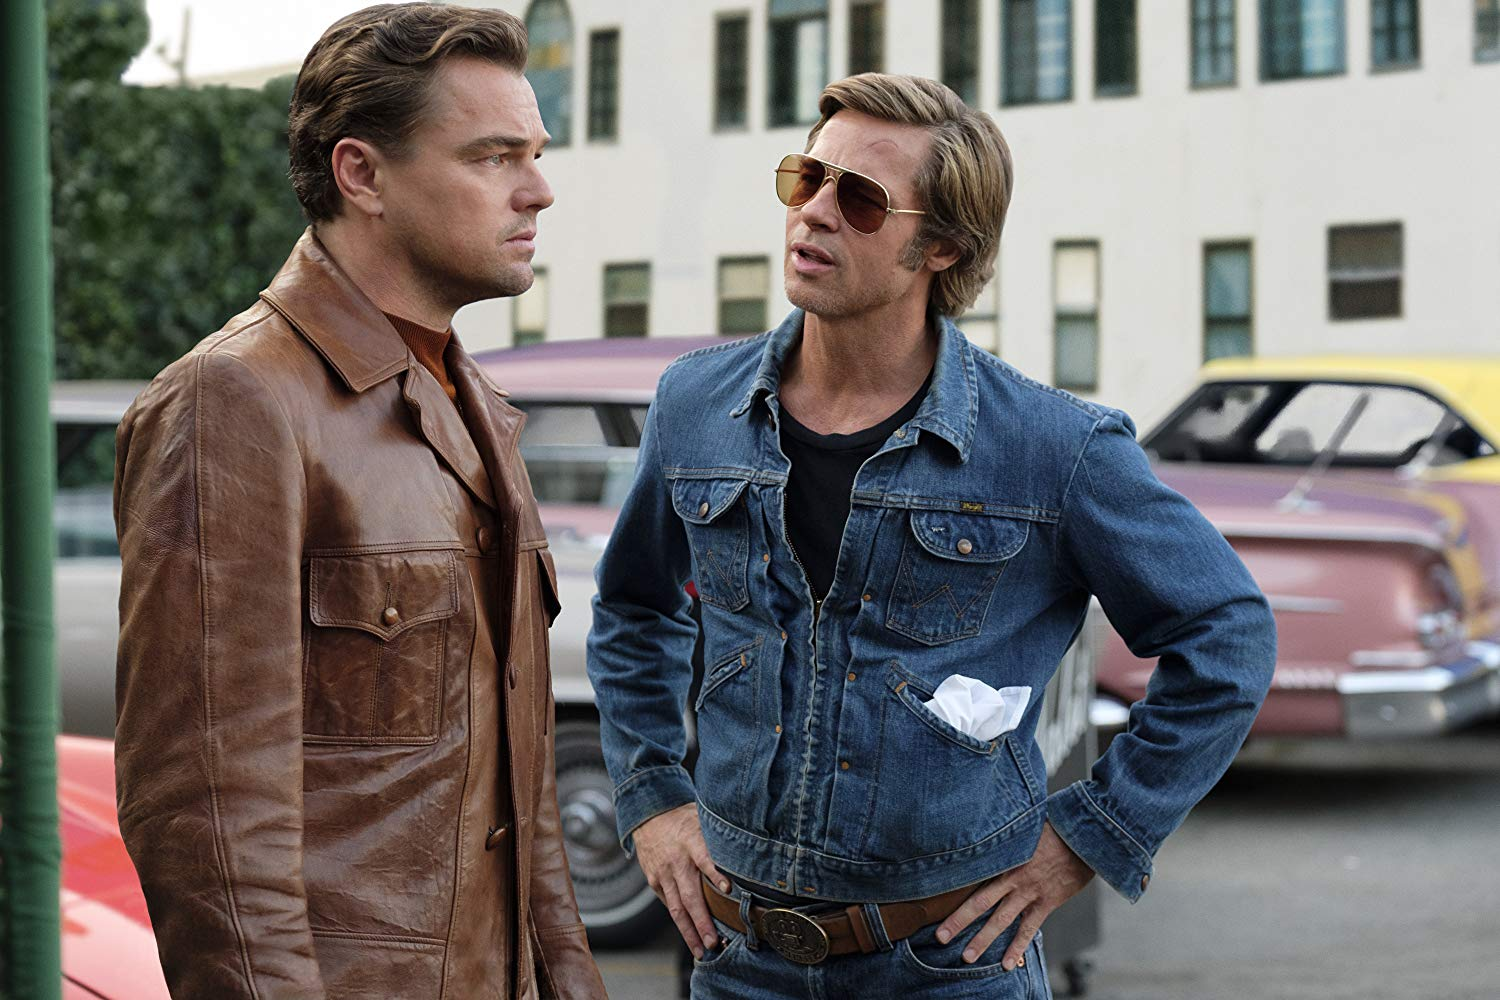 Leonardo DiCaprio e Brad Pitt em Once Upon a Time in Hollywood (2019) ©Sony Pictures